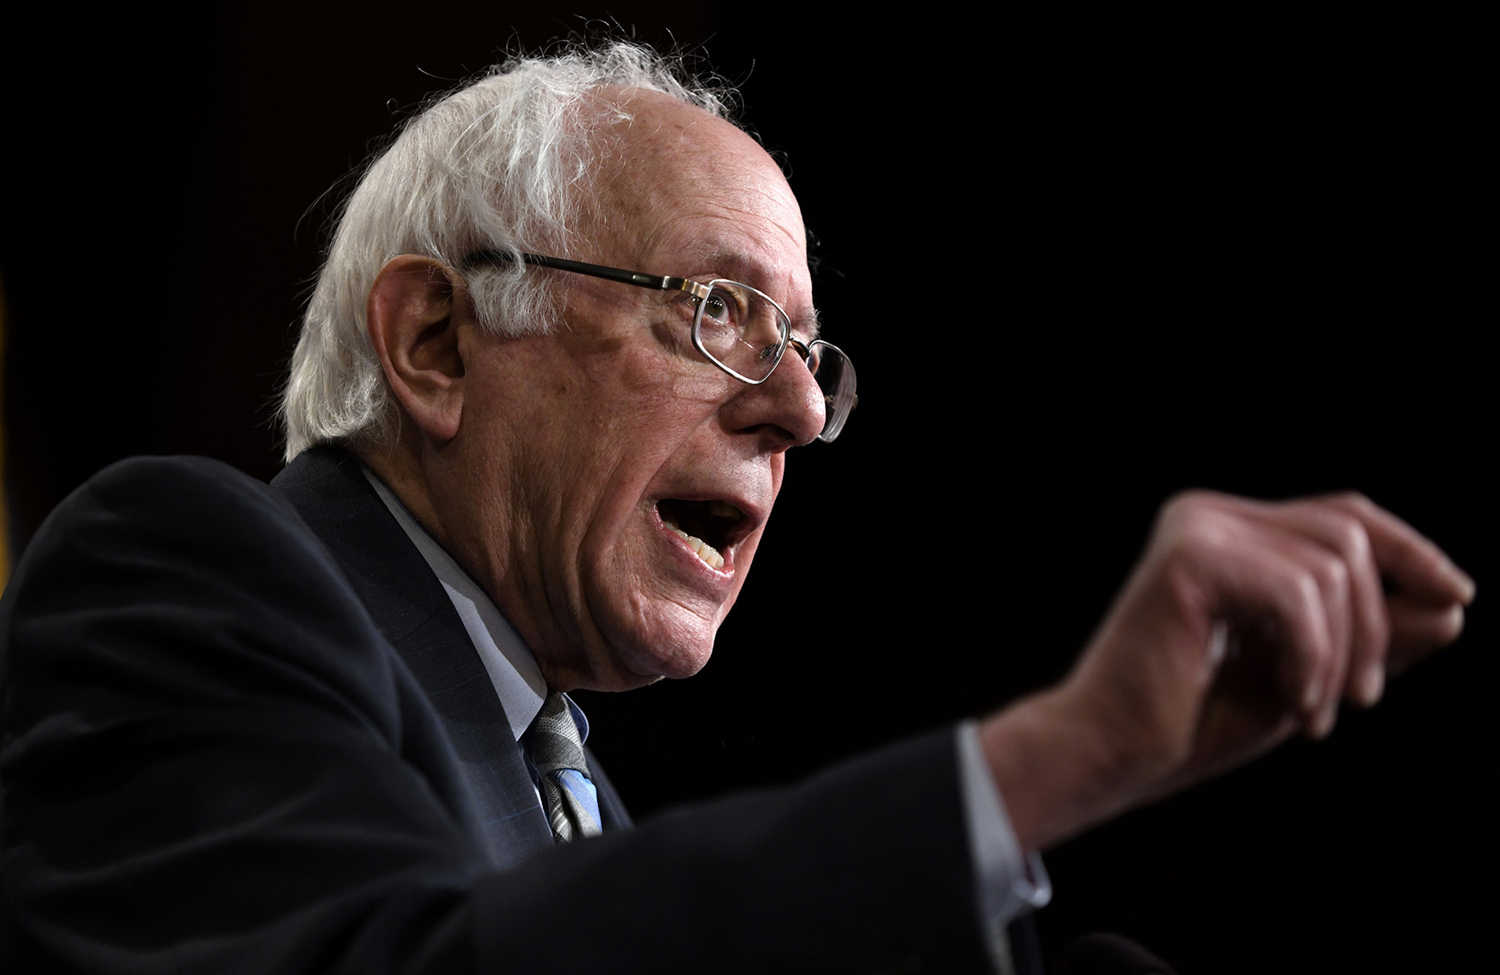 Sen. Bernie Sanders, I-Vt., announced Tuesday he would join a growing field of Democratic candidates in a bid for the presidency in 2020.